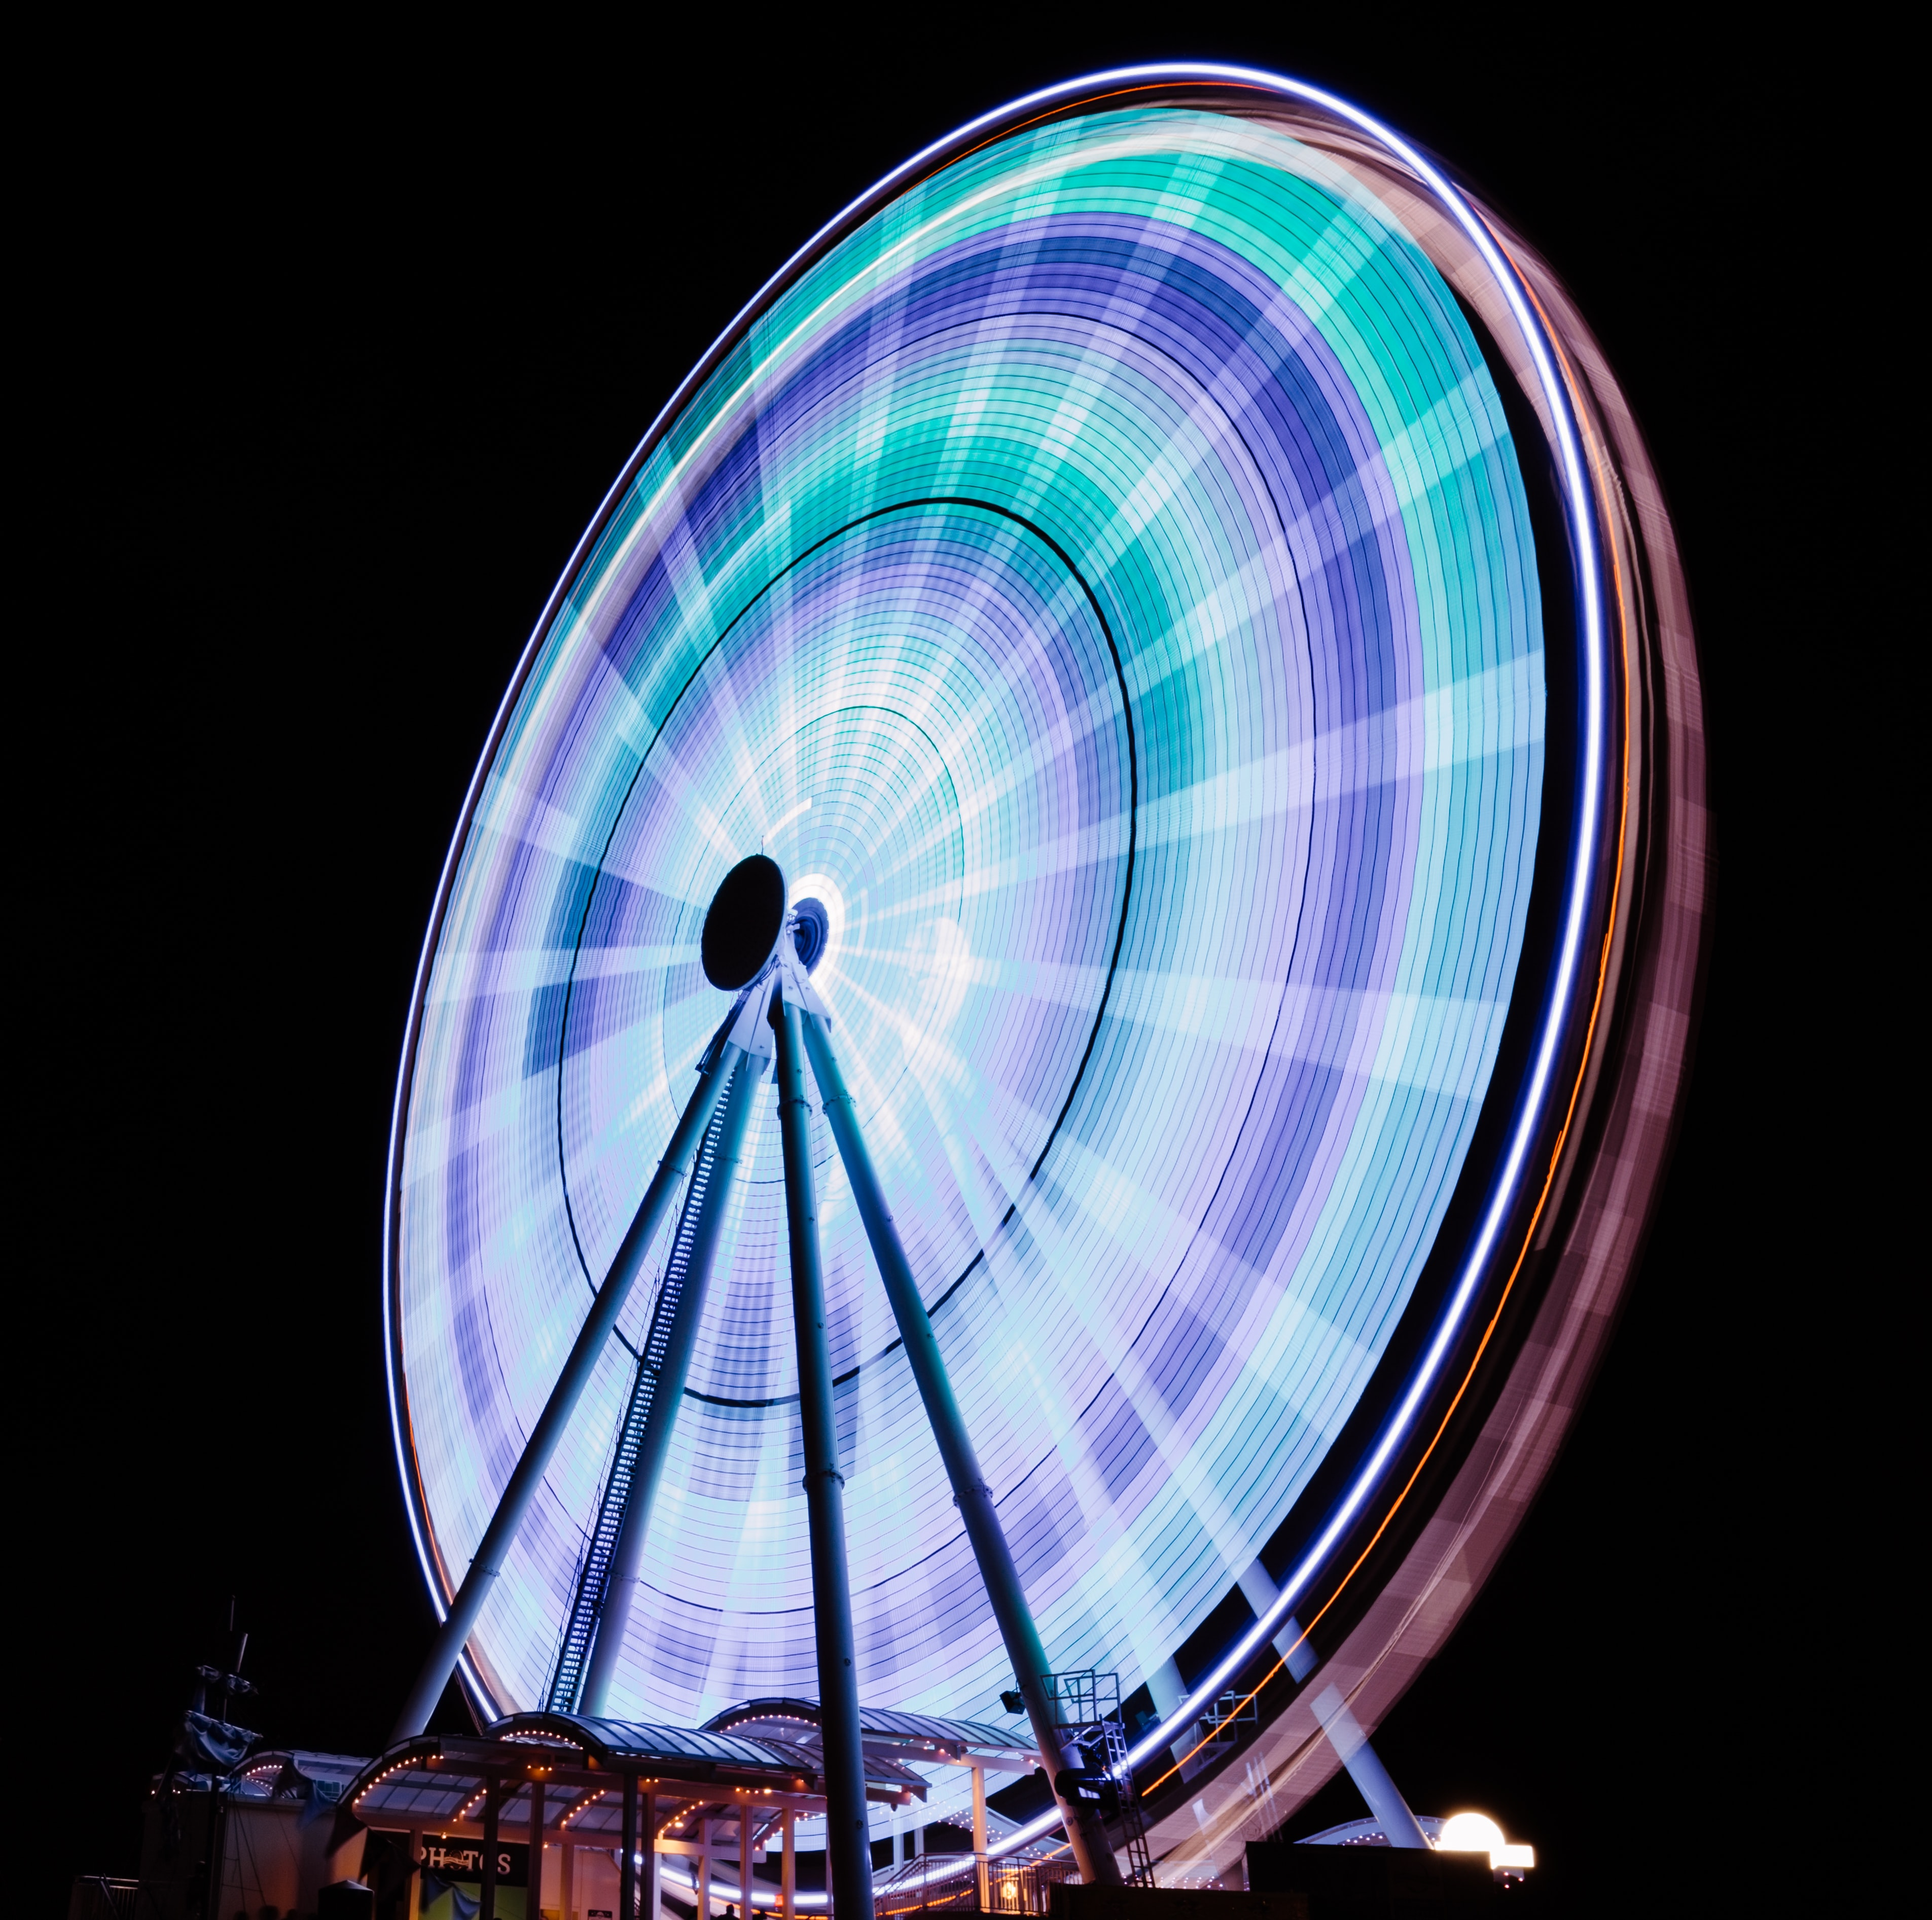 Long exposure photography of the Ferris wheel at National Harbor at night.